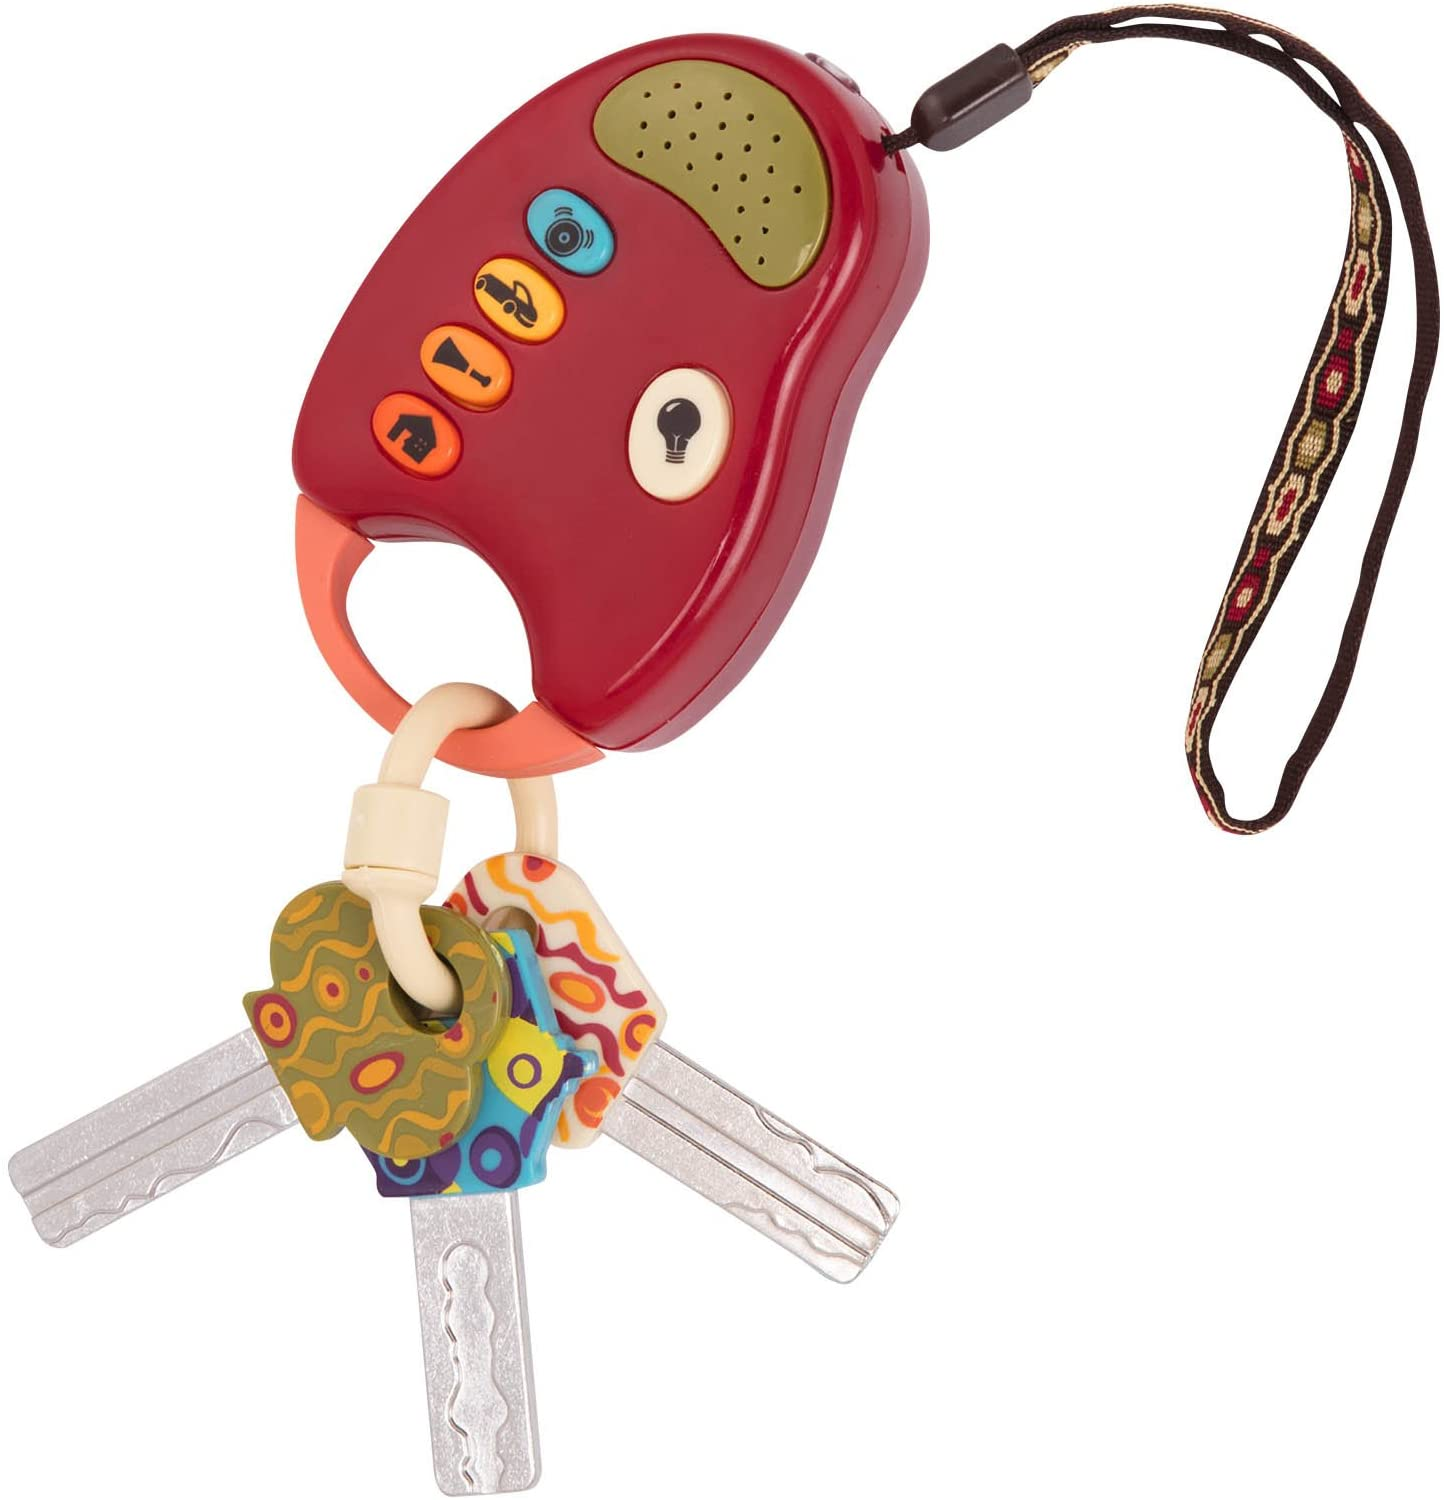 B Toy Car Keys and Red remote with Light and Sounds FunKeys Toy toys Funky Toy Keys for Toddlers and Babies Non-Toxic